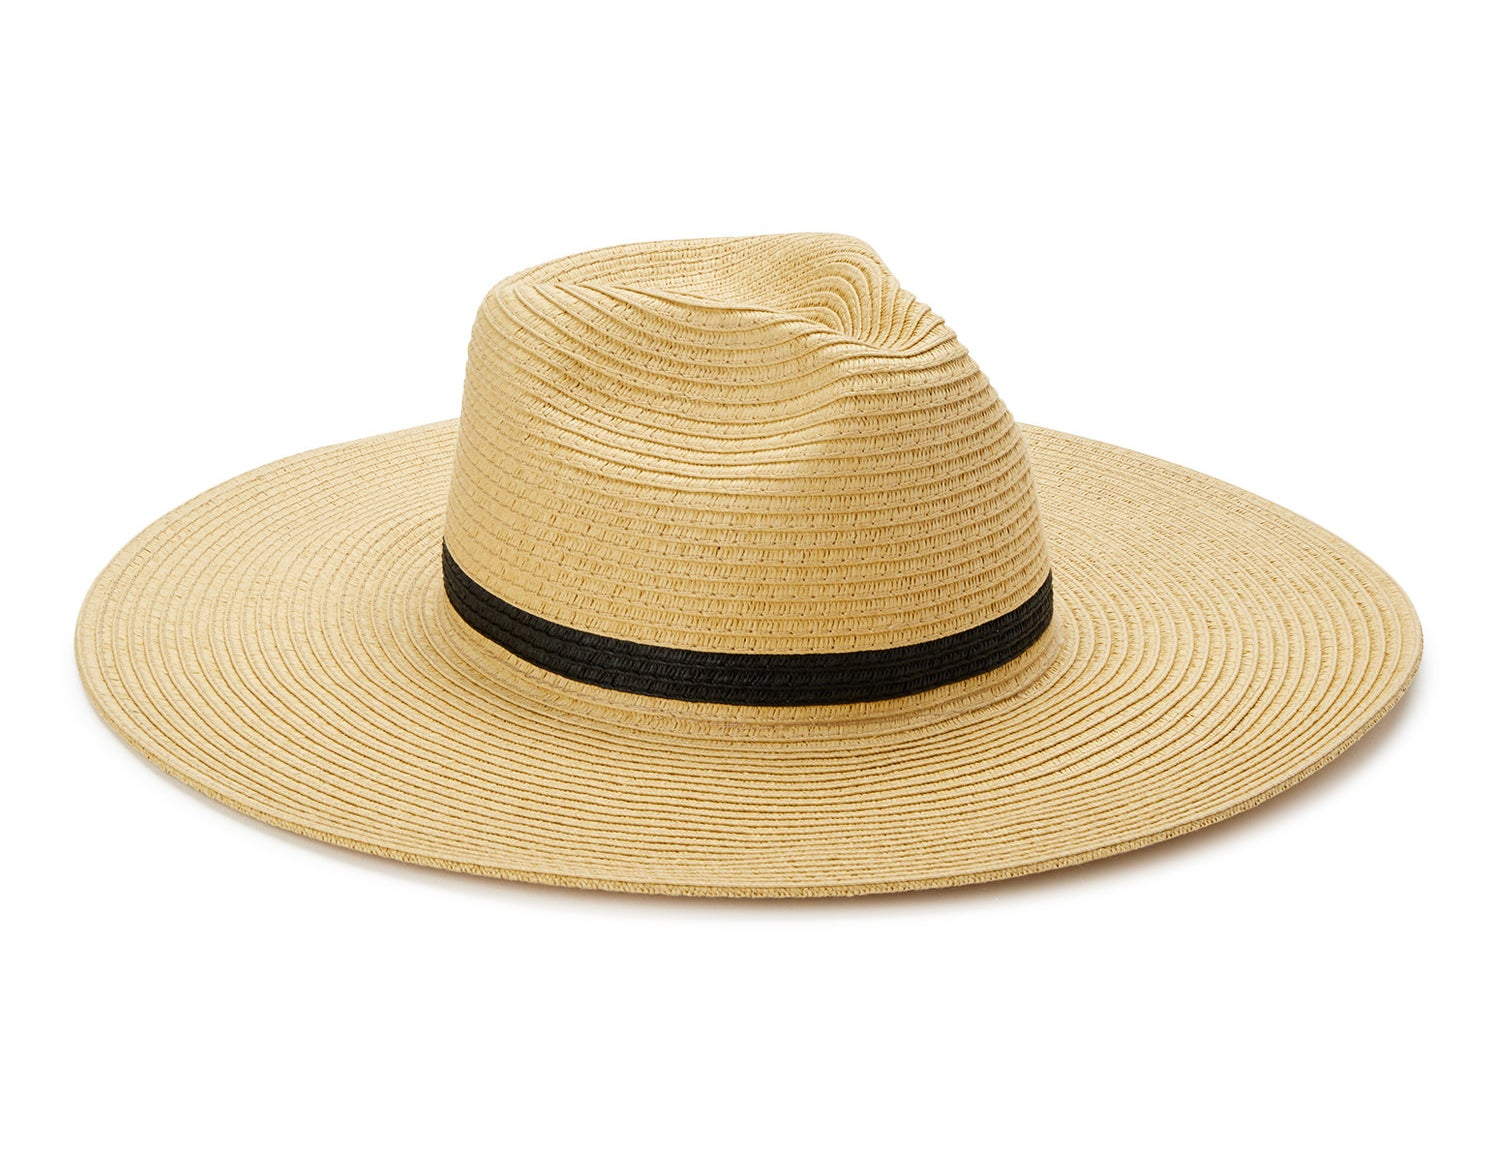 A straw hat with a black ribbon